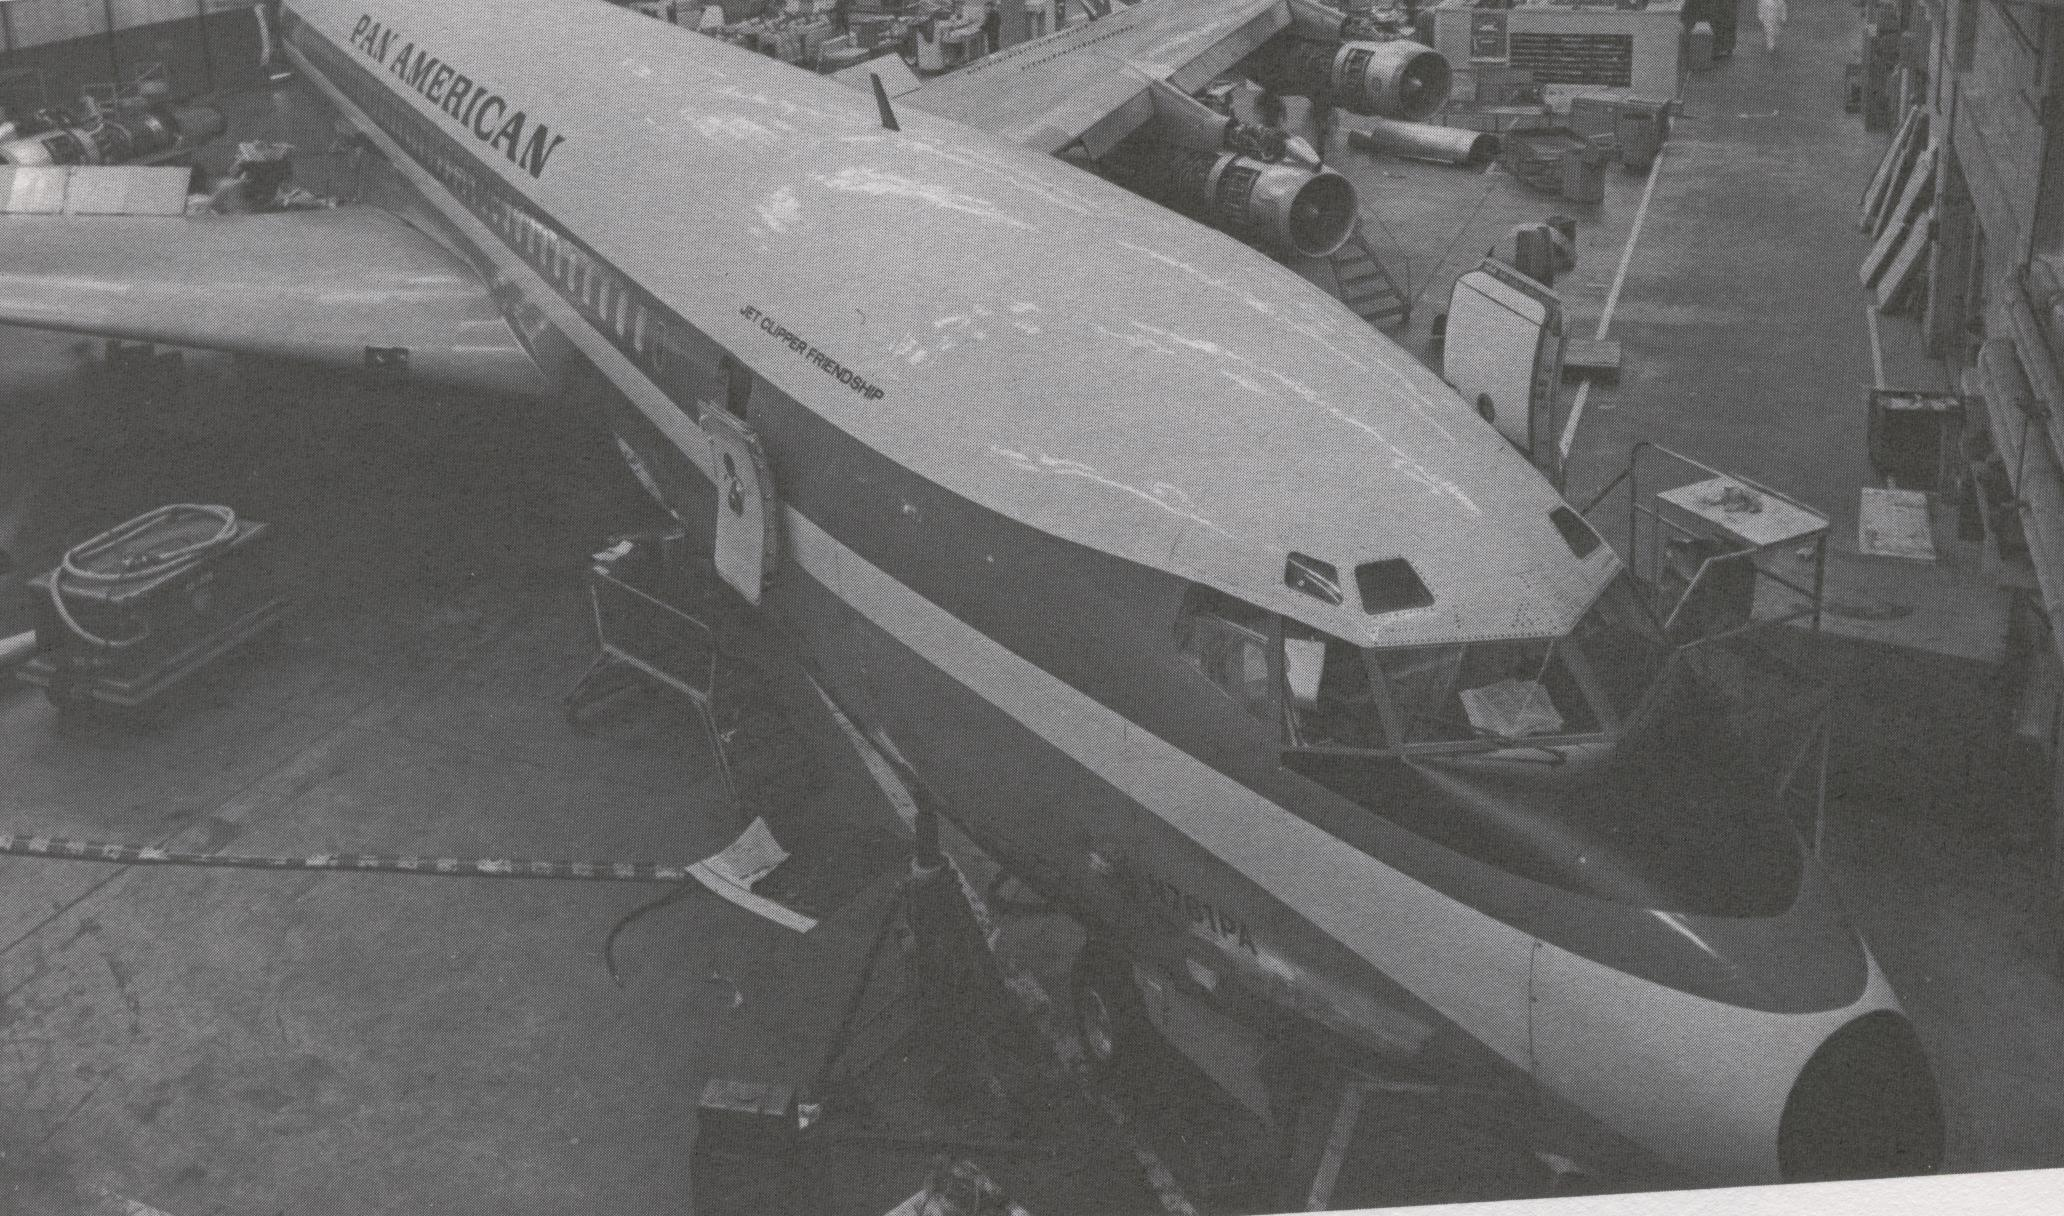 Pan Am Boeing 707 tail number N761PA Clipper Friendship in the hanger for overhaul.